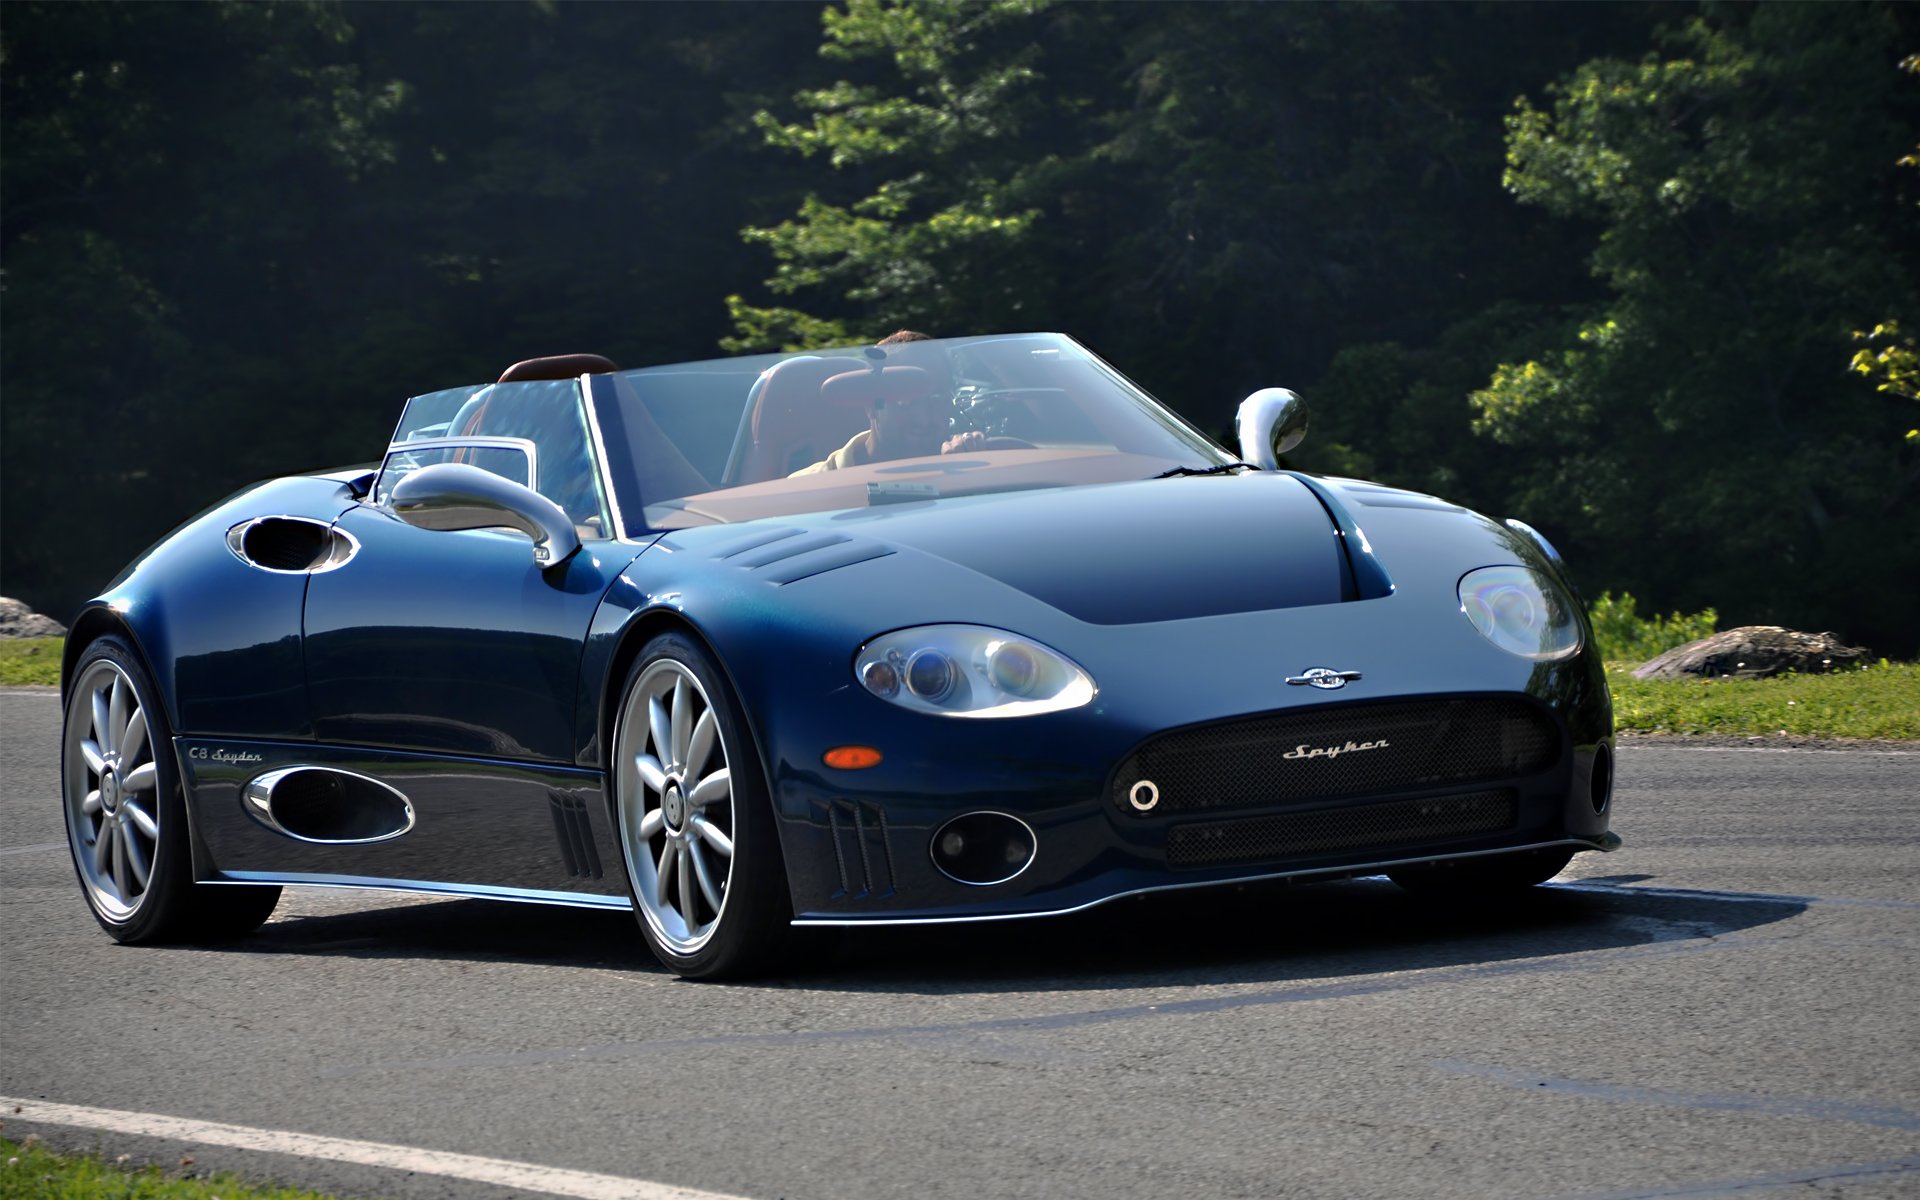 Spyker spyder photo - 4